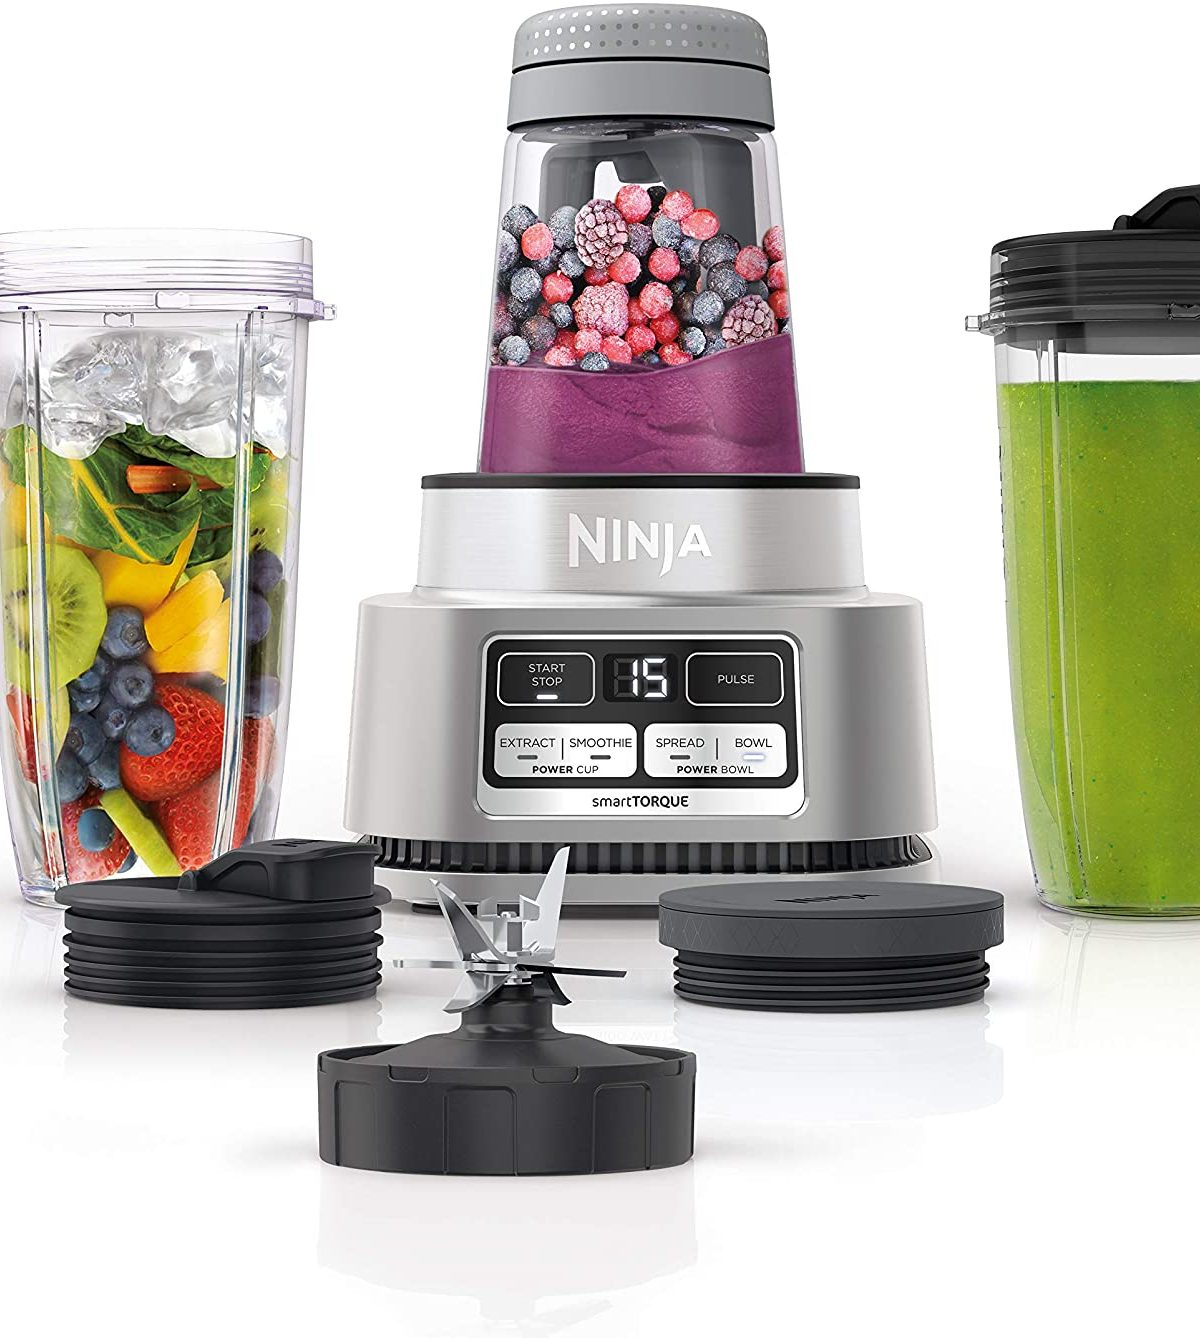 Ninja SS101 Foodi Power Nutri Duo Smoothie Bowl Maker and Personal Blender